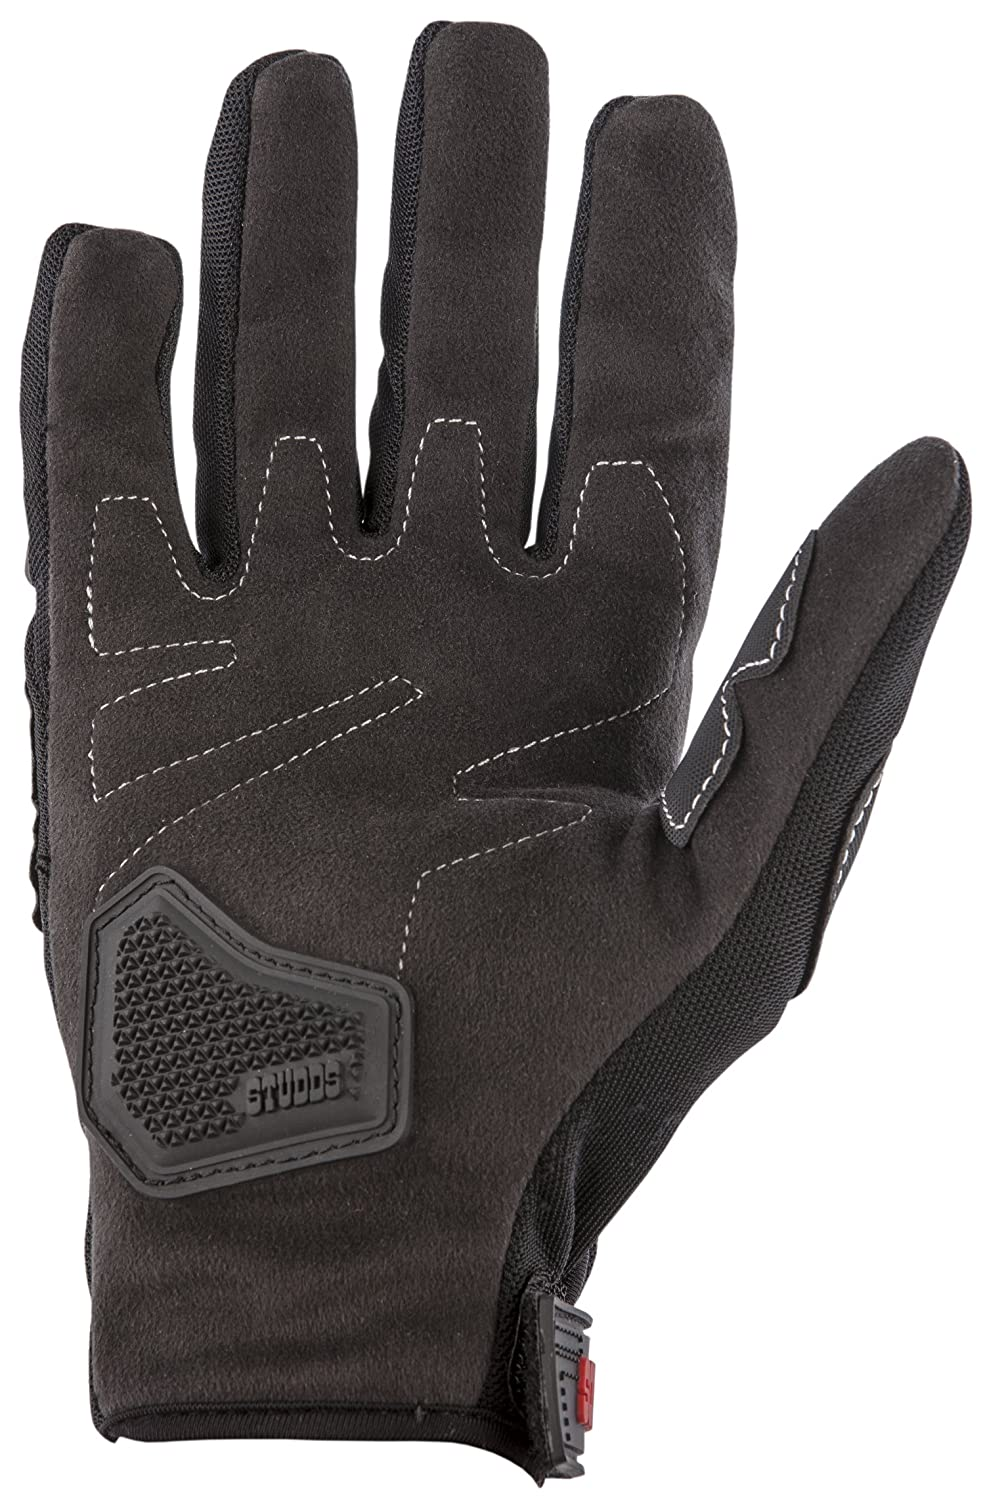 Driving gloves online shopping india - Studds Smg 2 Motorcycle Riding Gears Driving Gloves Black Xl Amazon In Car Motorbike